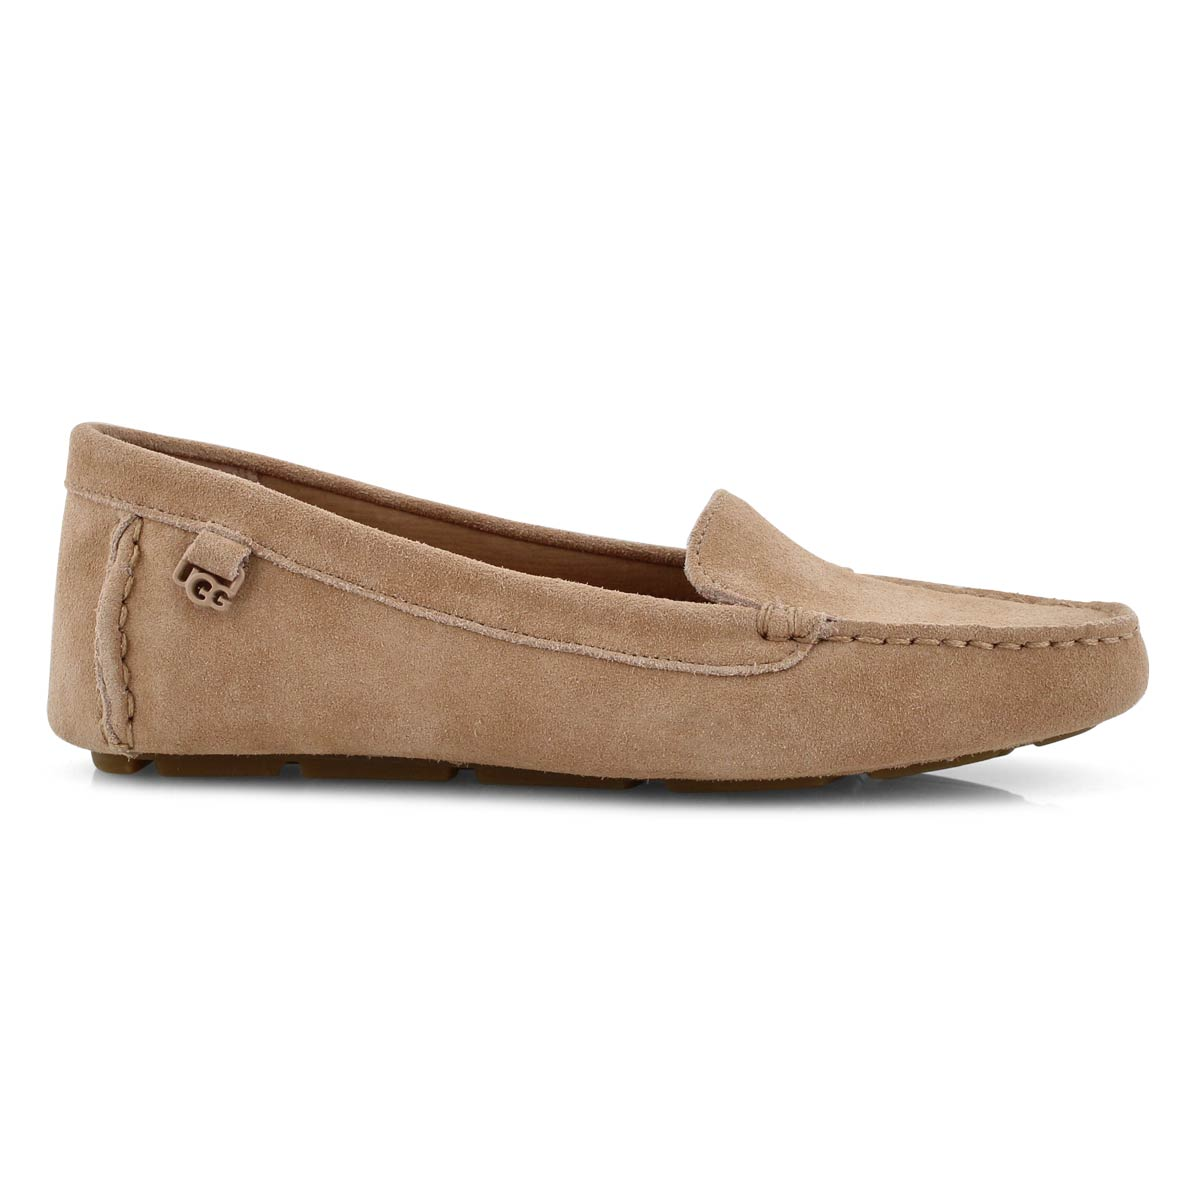 Lds Flores arroyo casual slip on shoe